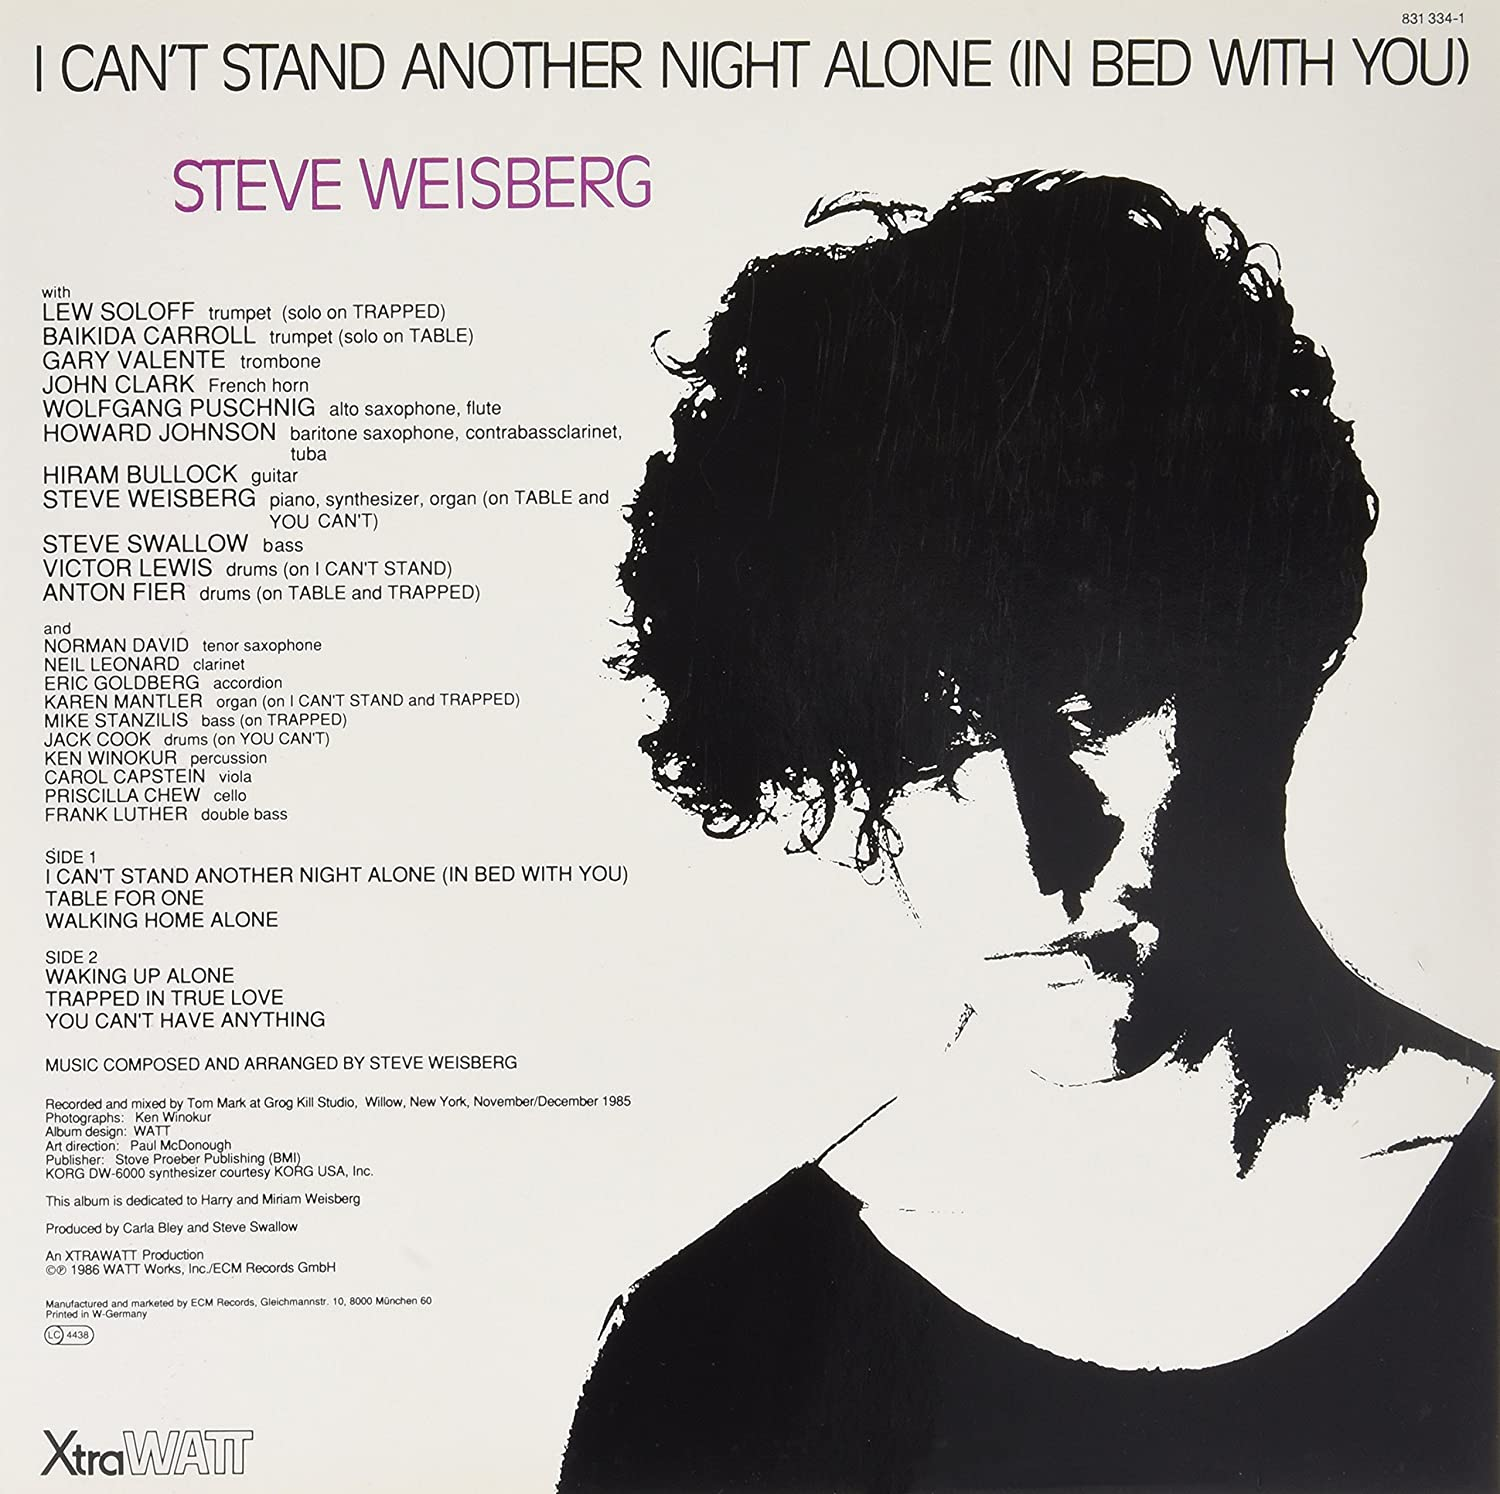 Steve Weisberg I Cant Stand Another Night Alone In Bed With You